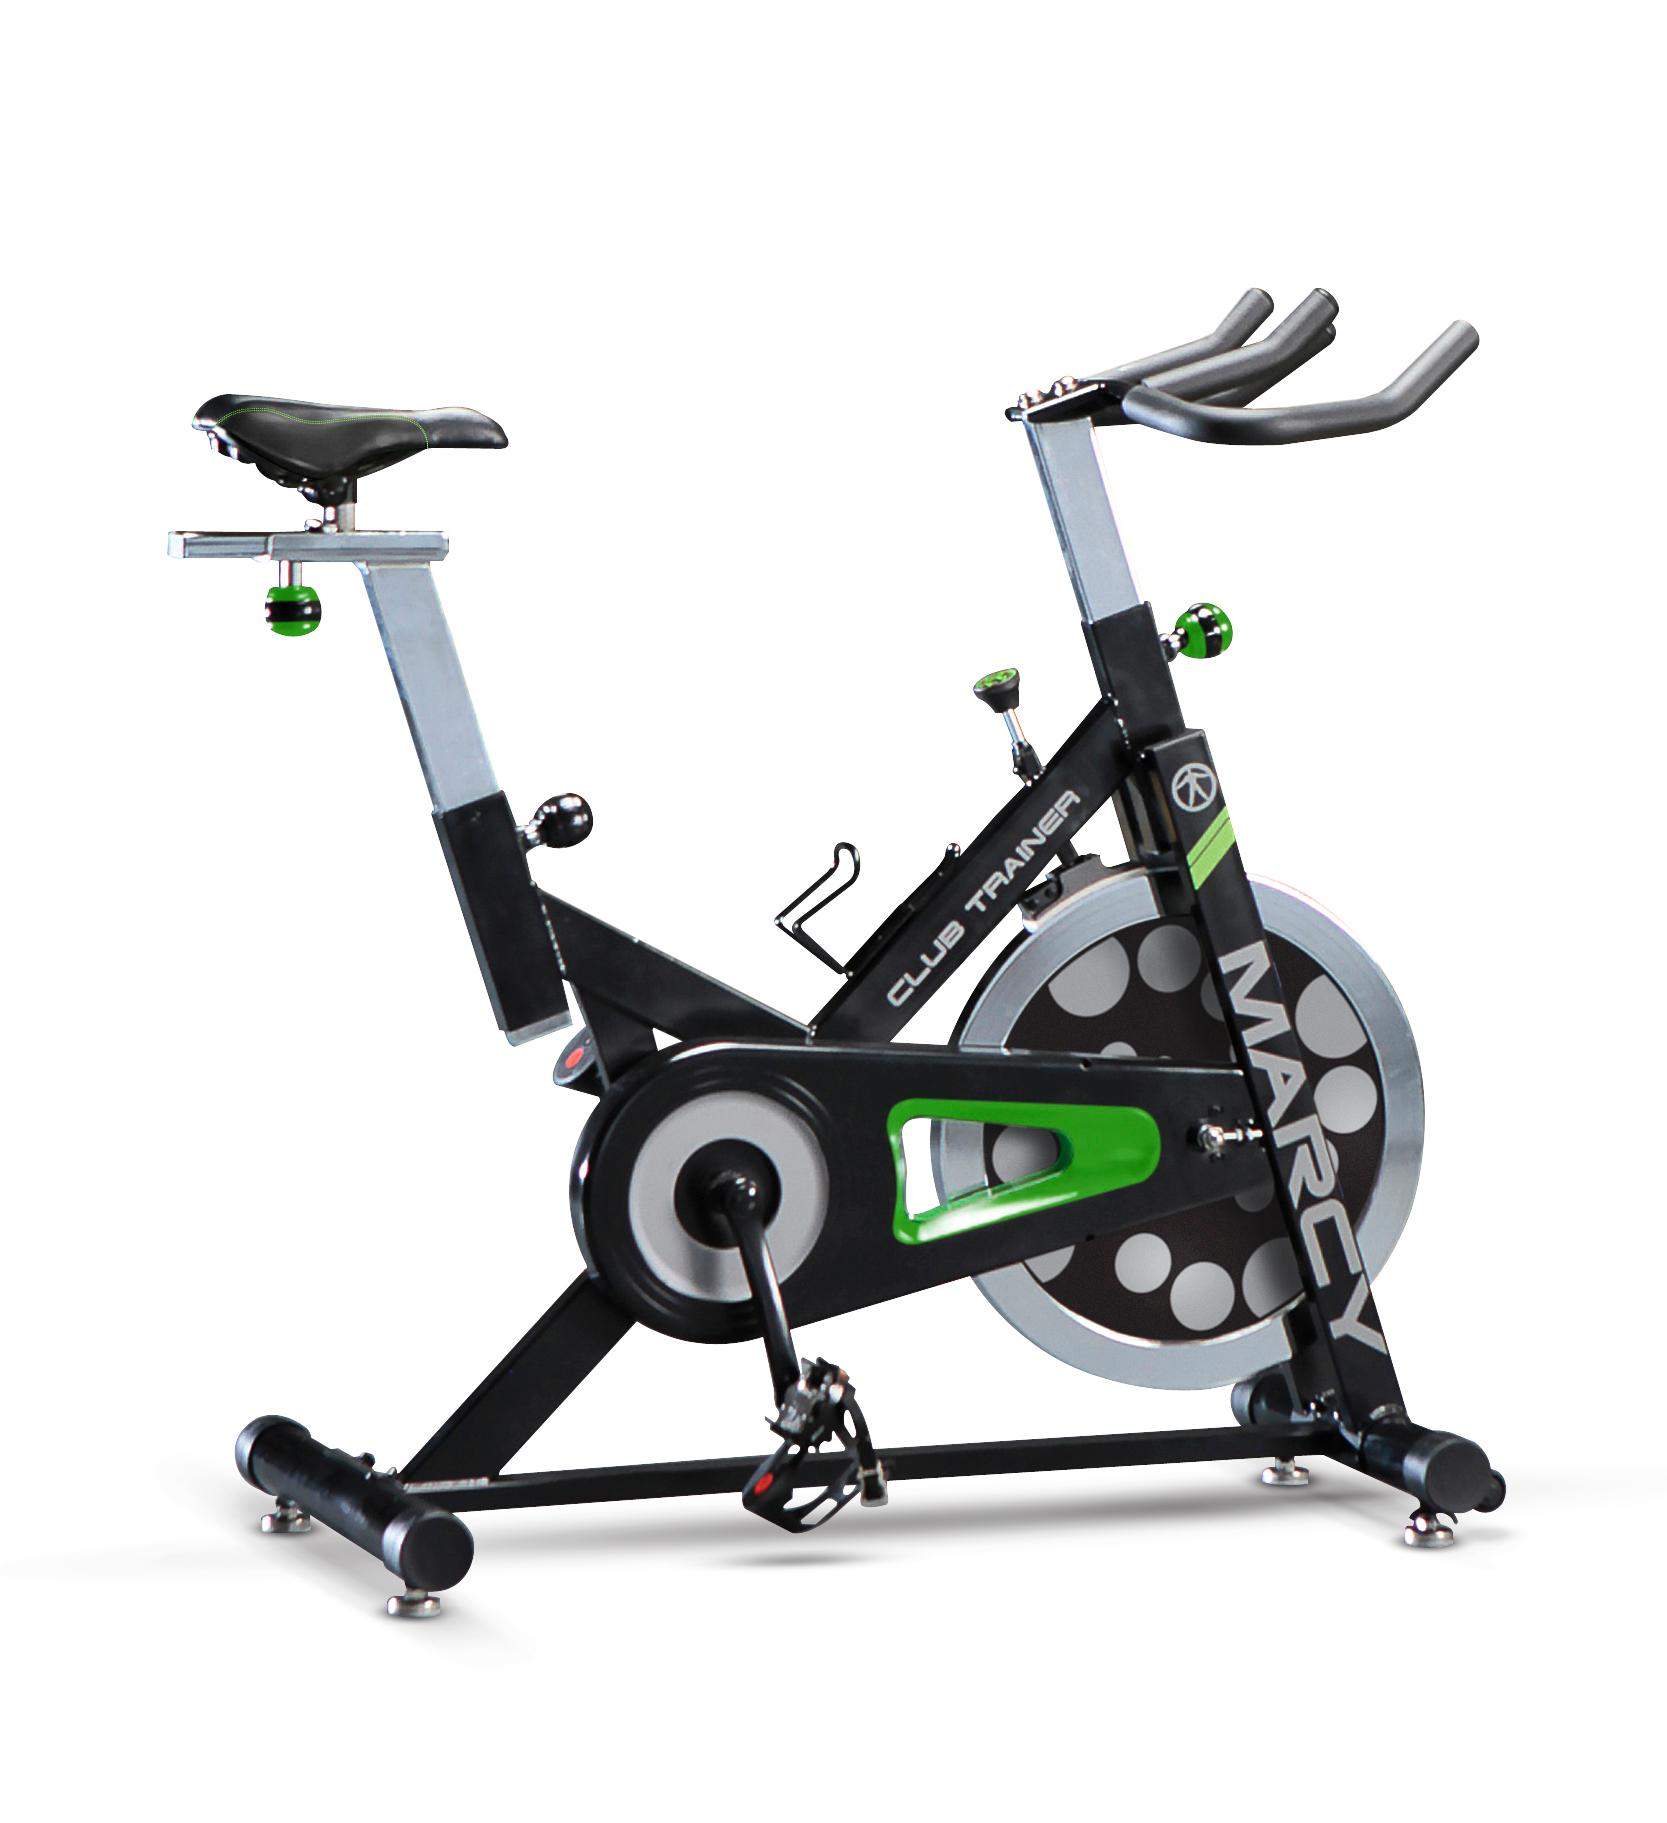 Amazon.com : Marcy Club Revolution Stationary Cycle ...